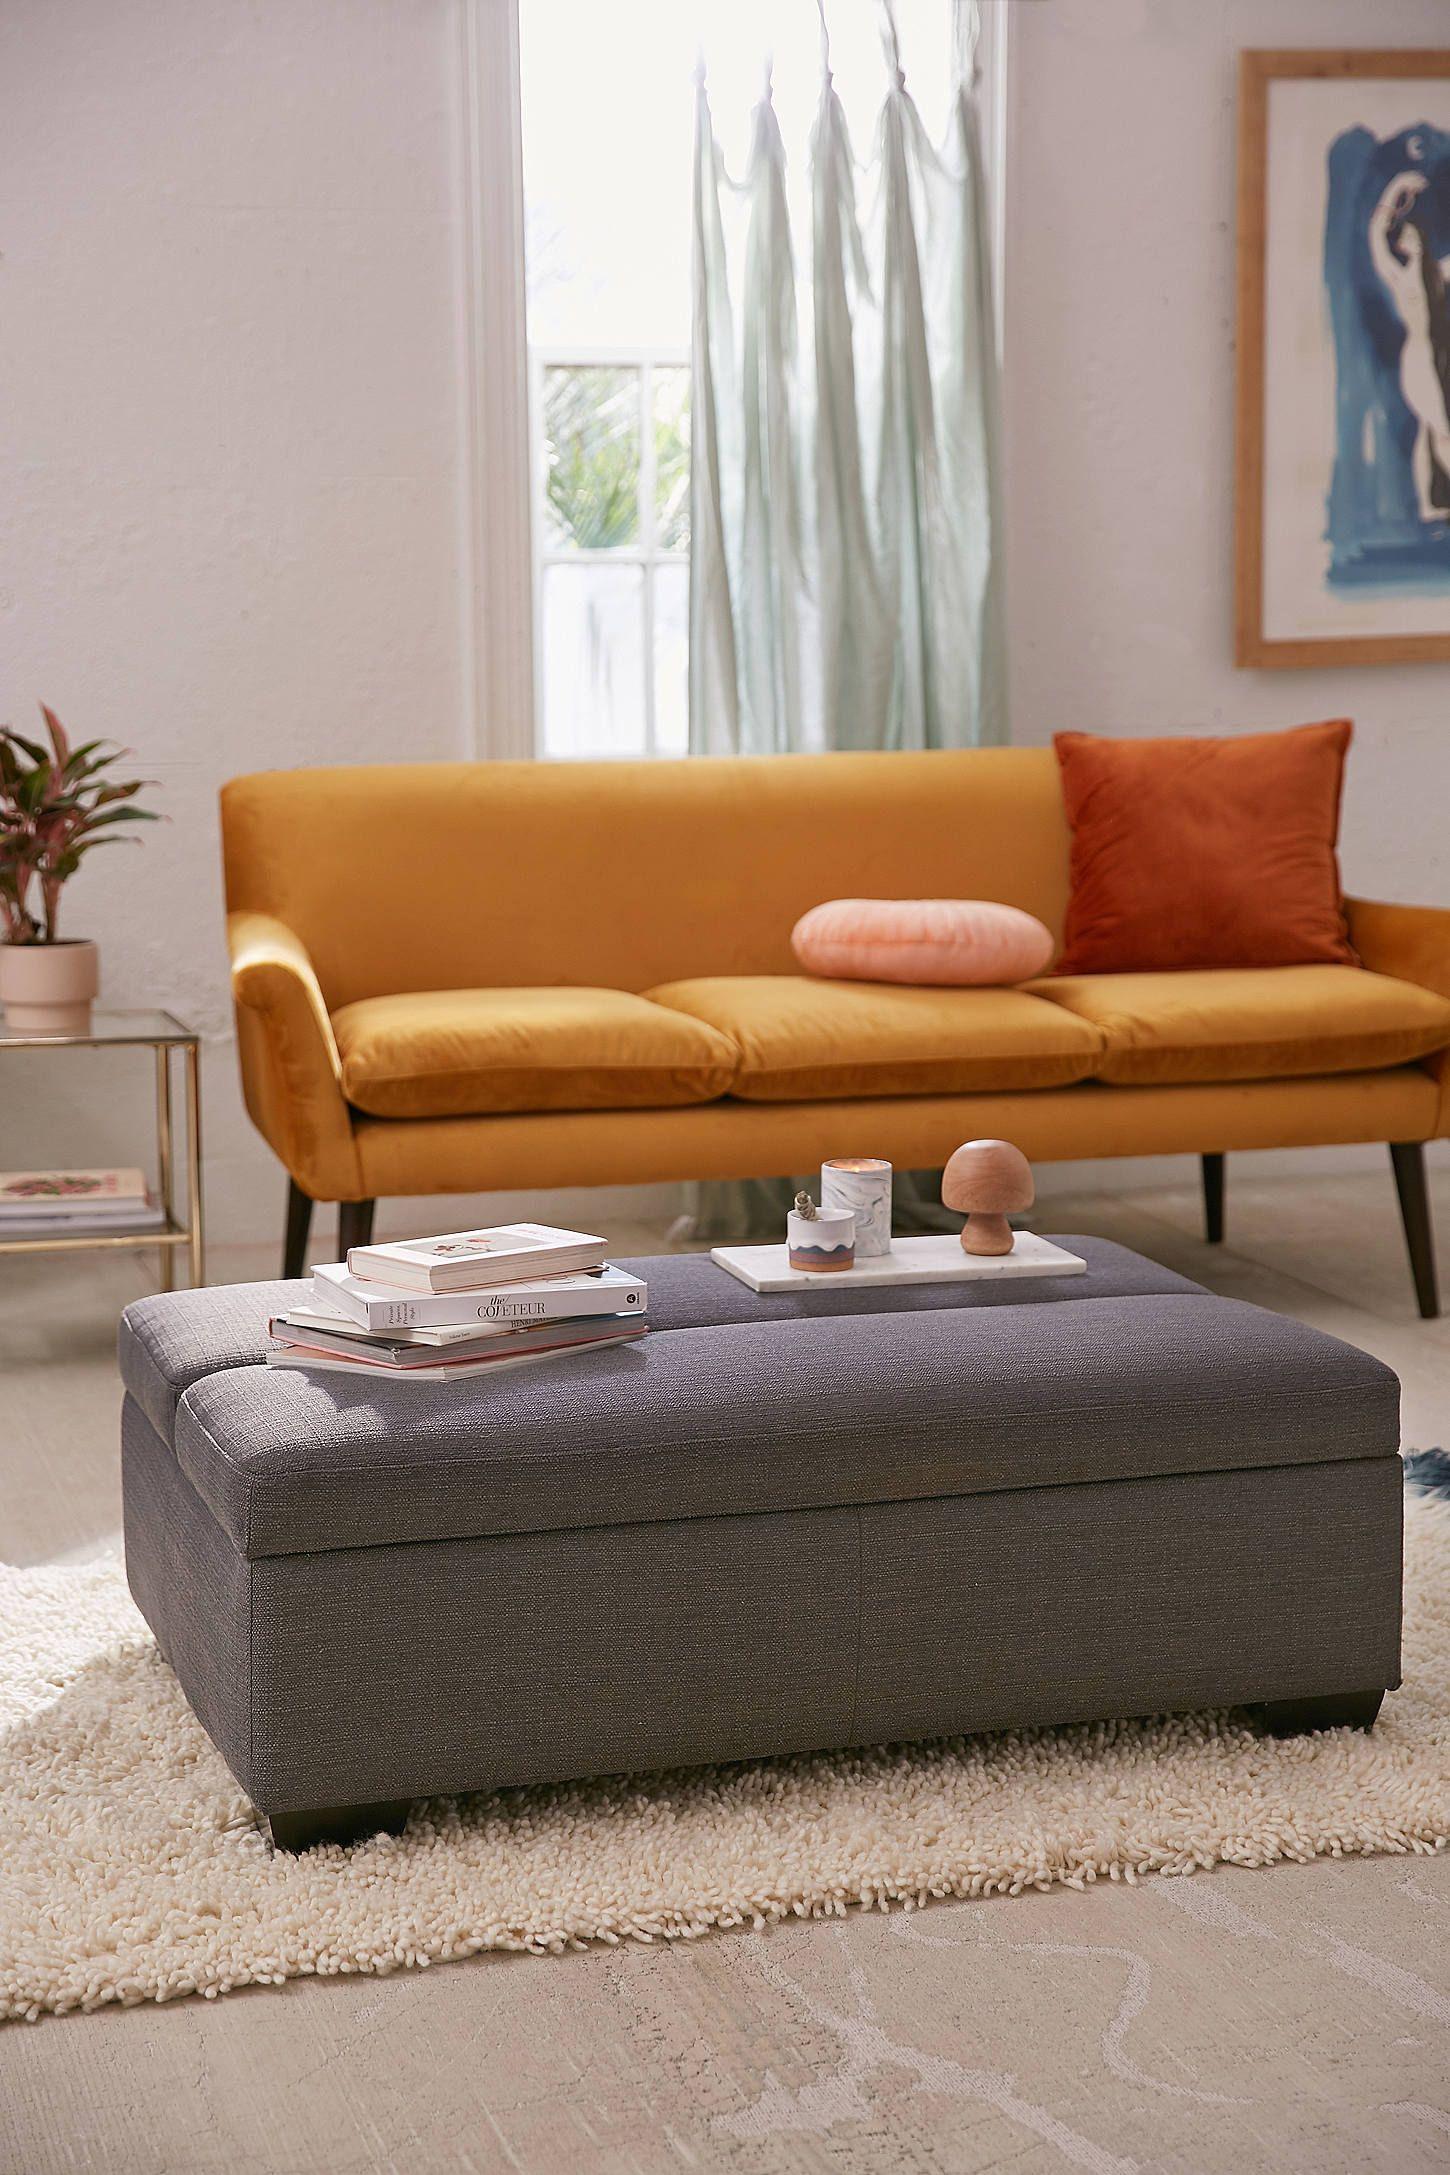 sleeper ottoman ottomans playrooms and apartments rh pinterest com